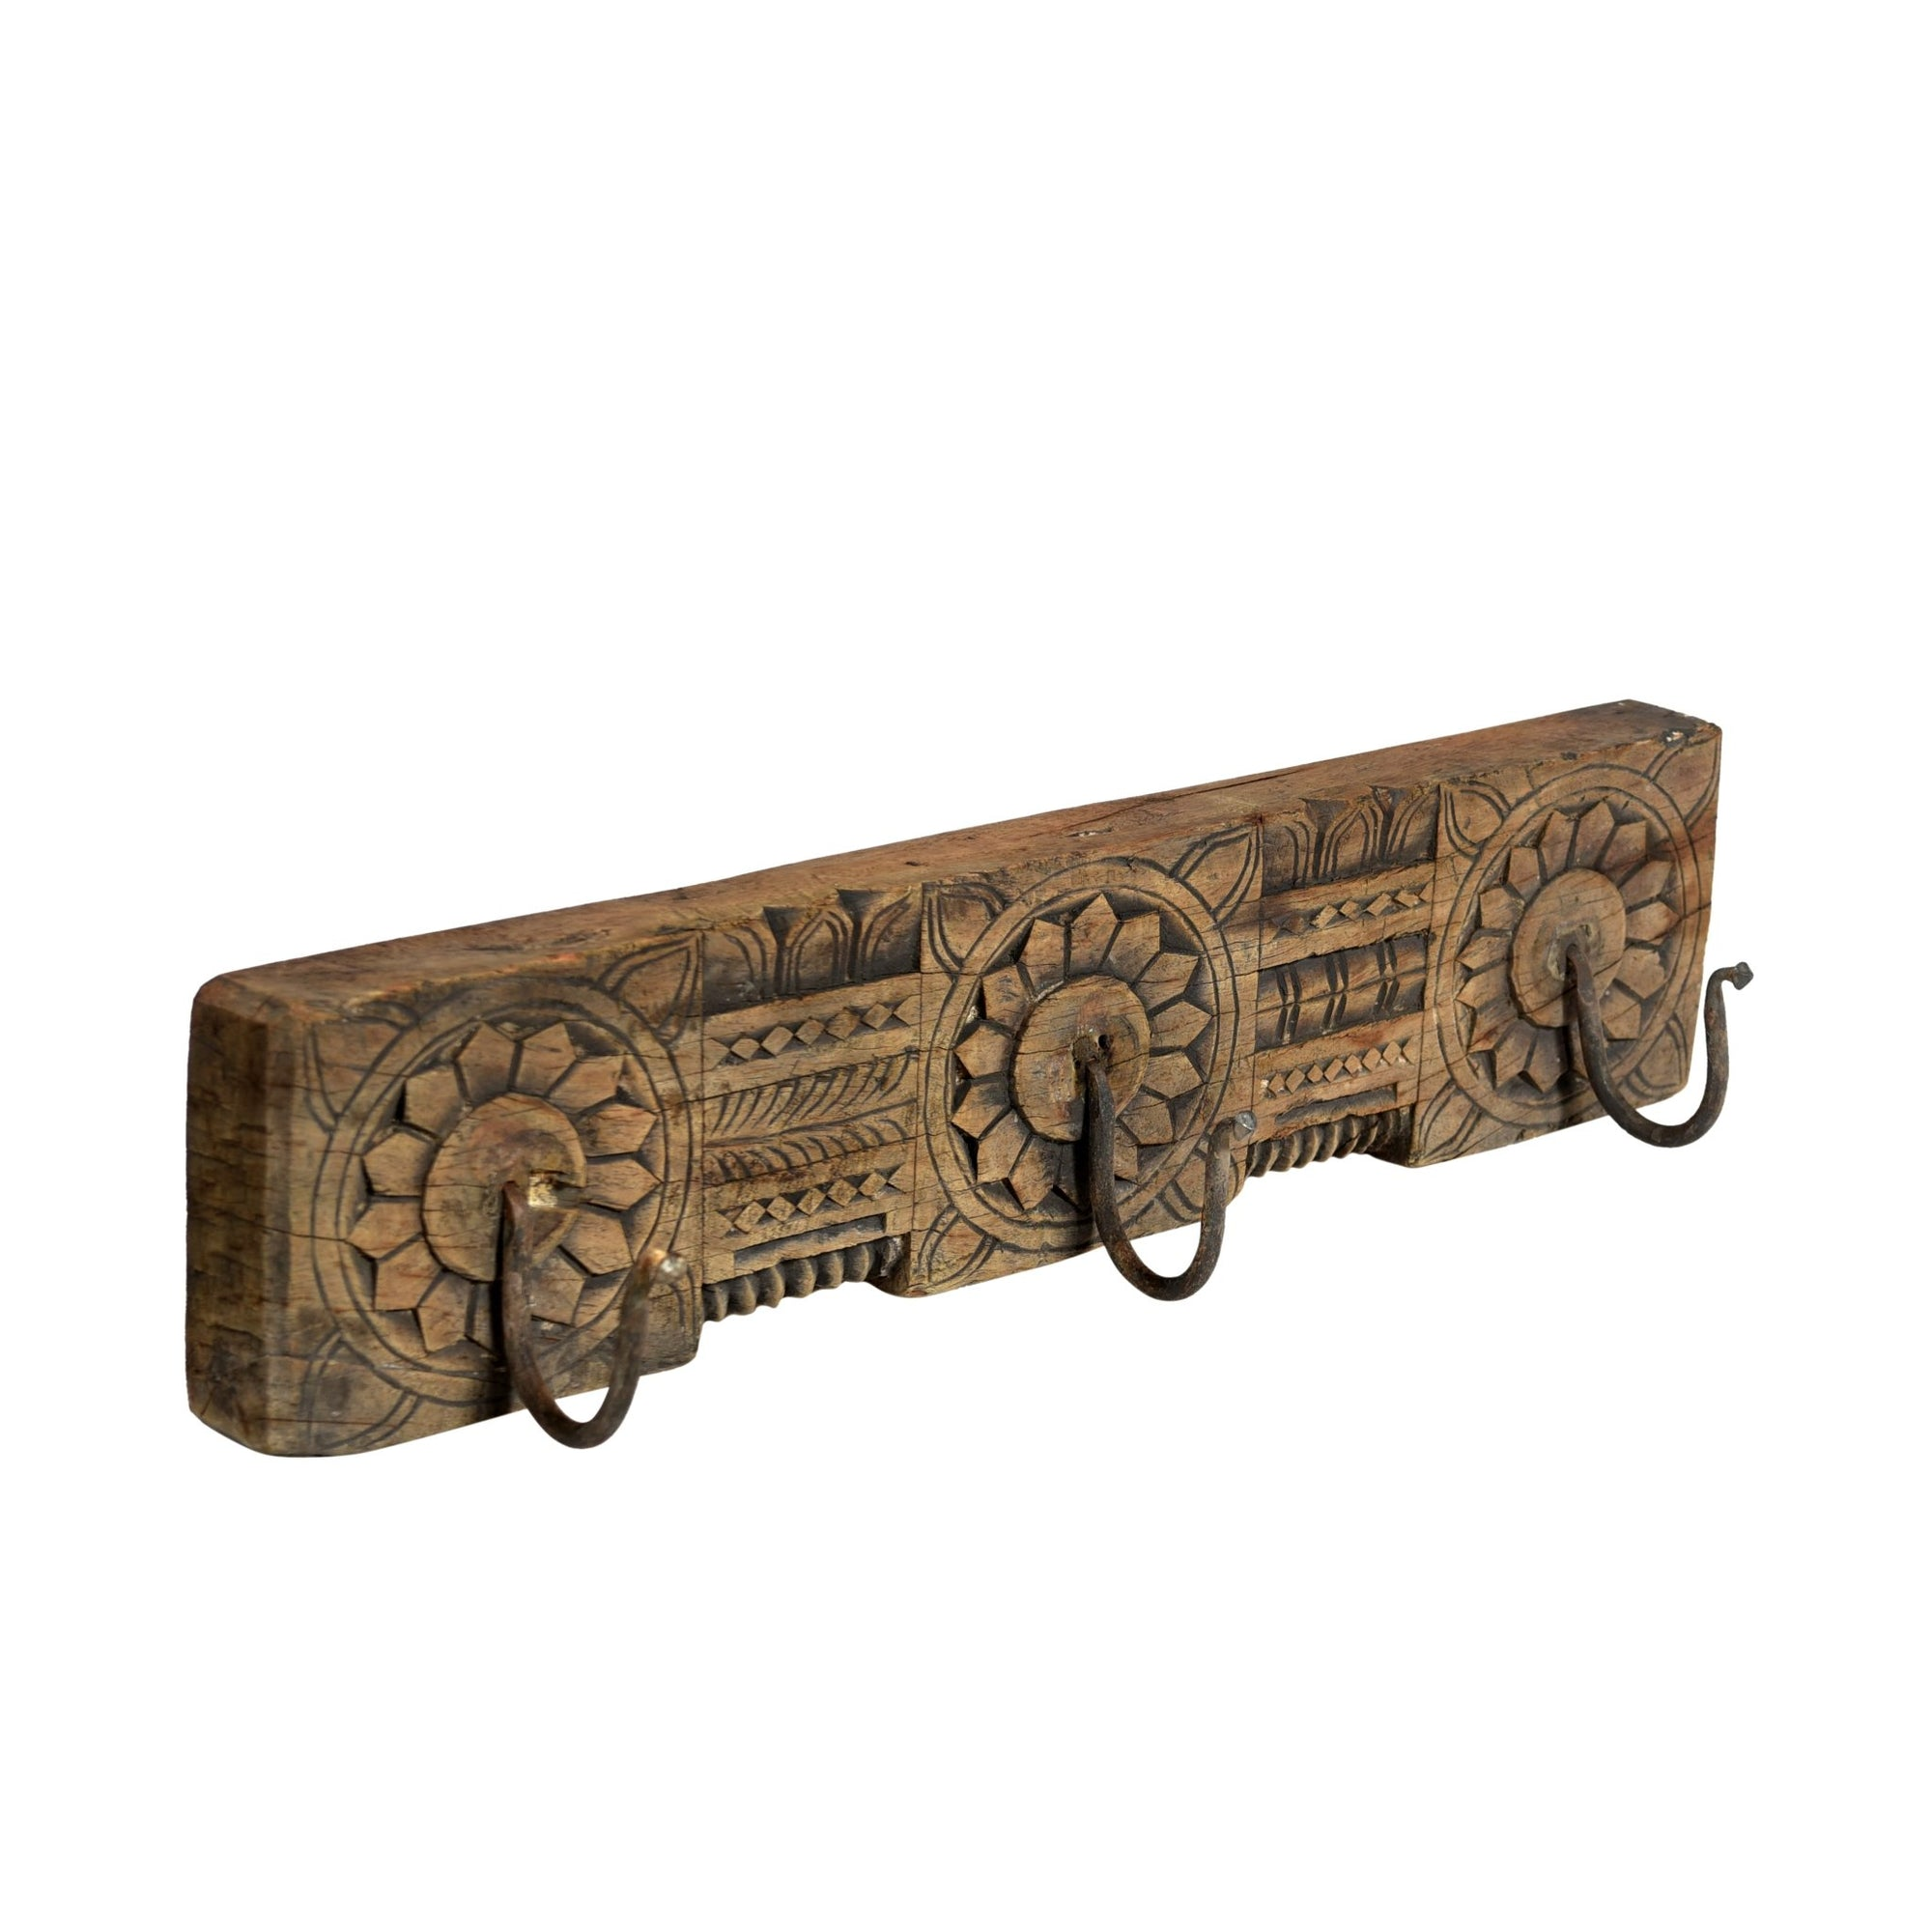 Carved Coat Hook Rail From Kerela - 19thC | Indigo Oriental Antiques